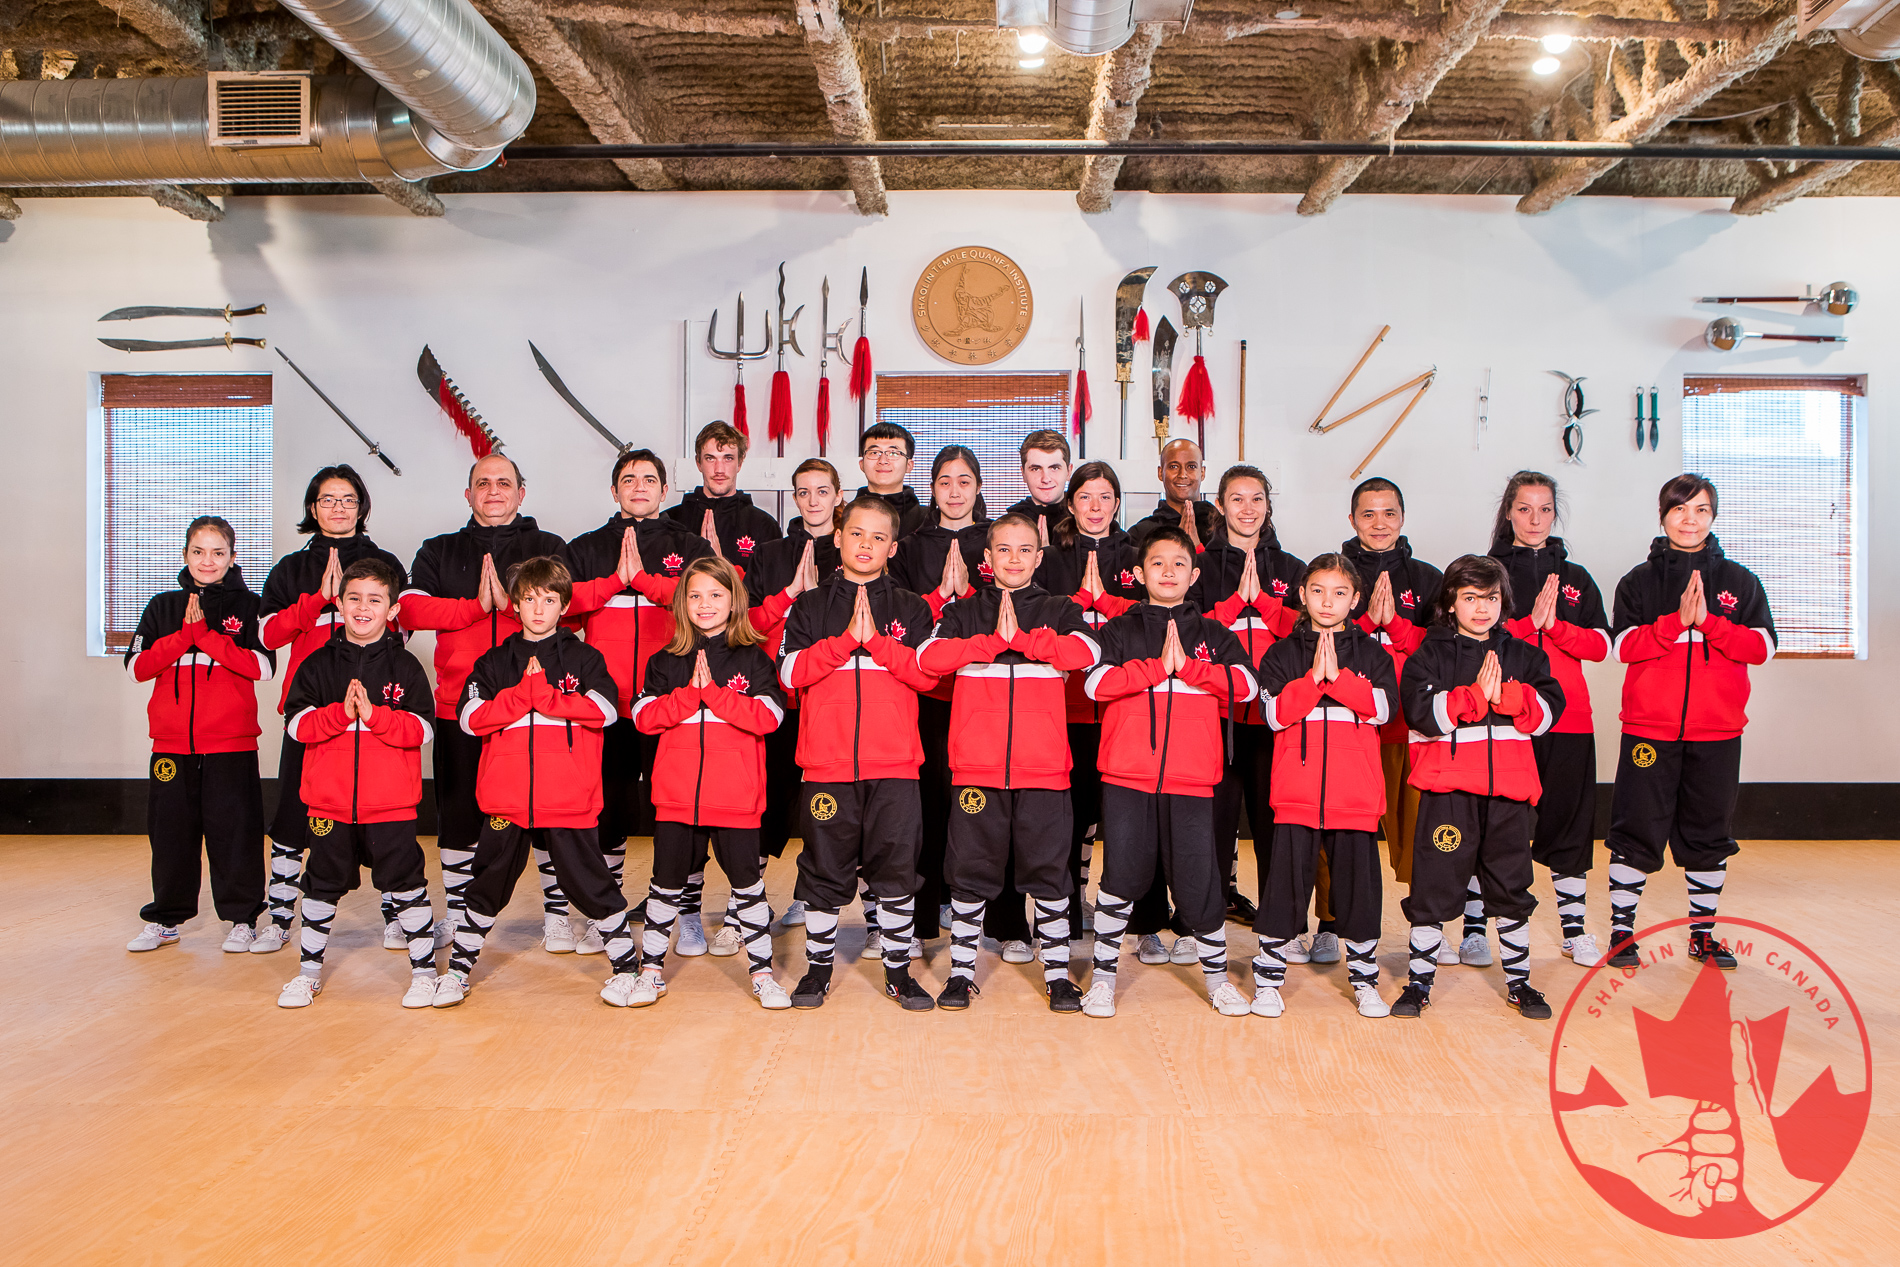 Shaolin Team Canada Athletes Team Wearing Jackets Supplied by Eagle View International